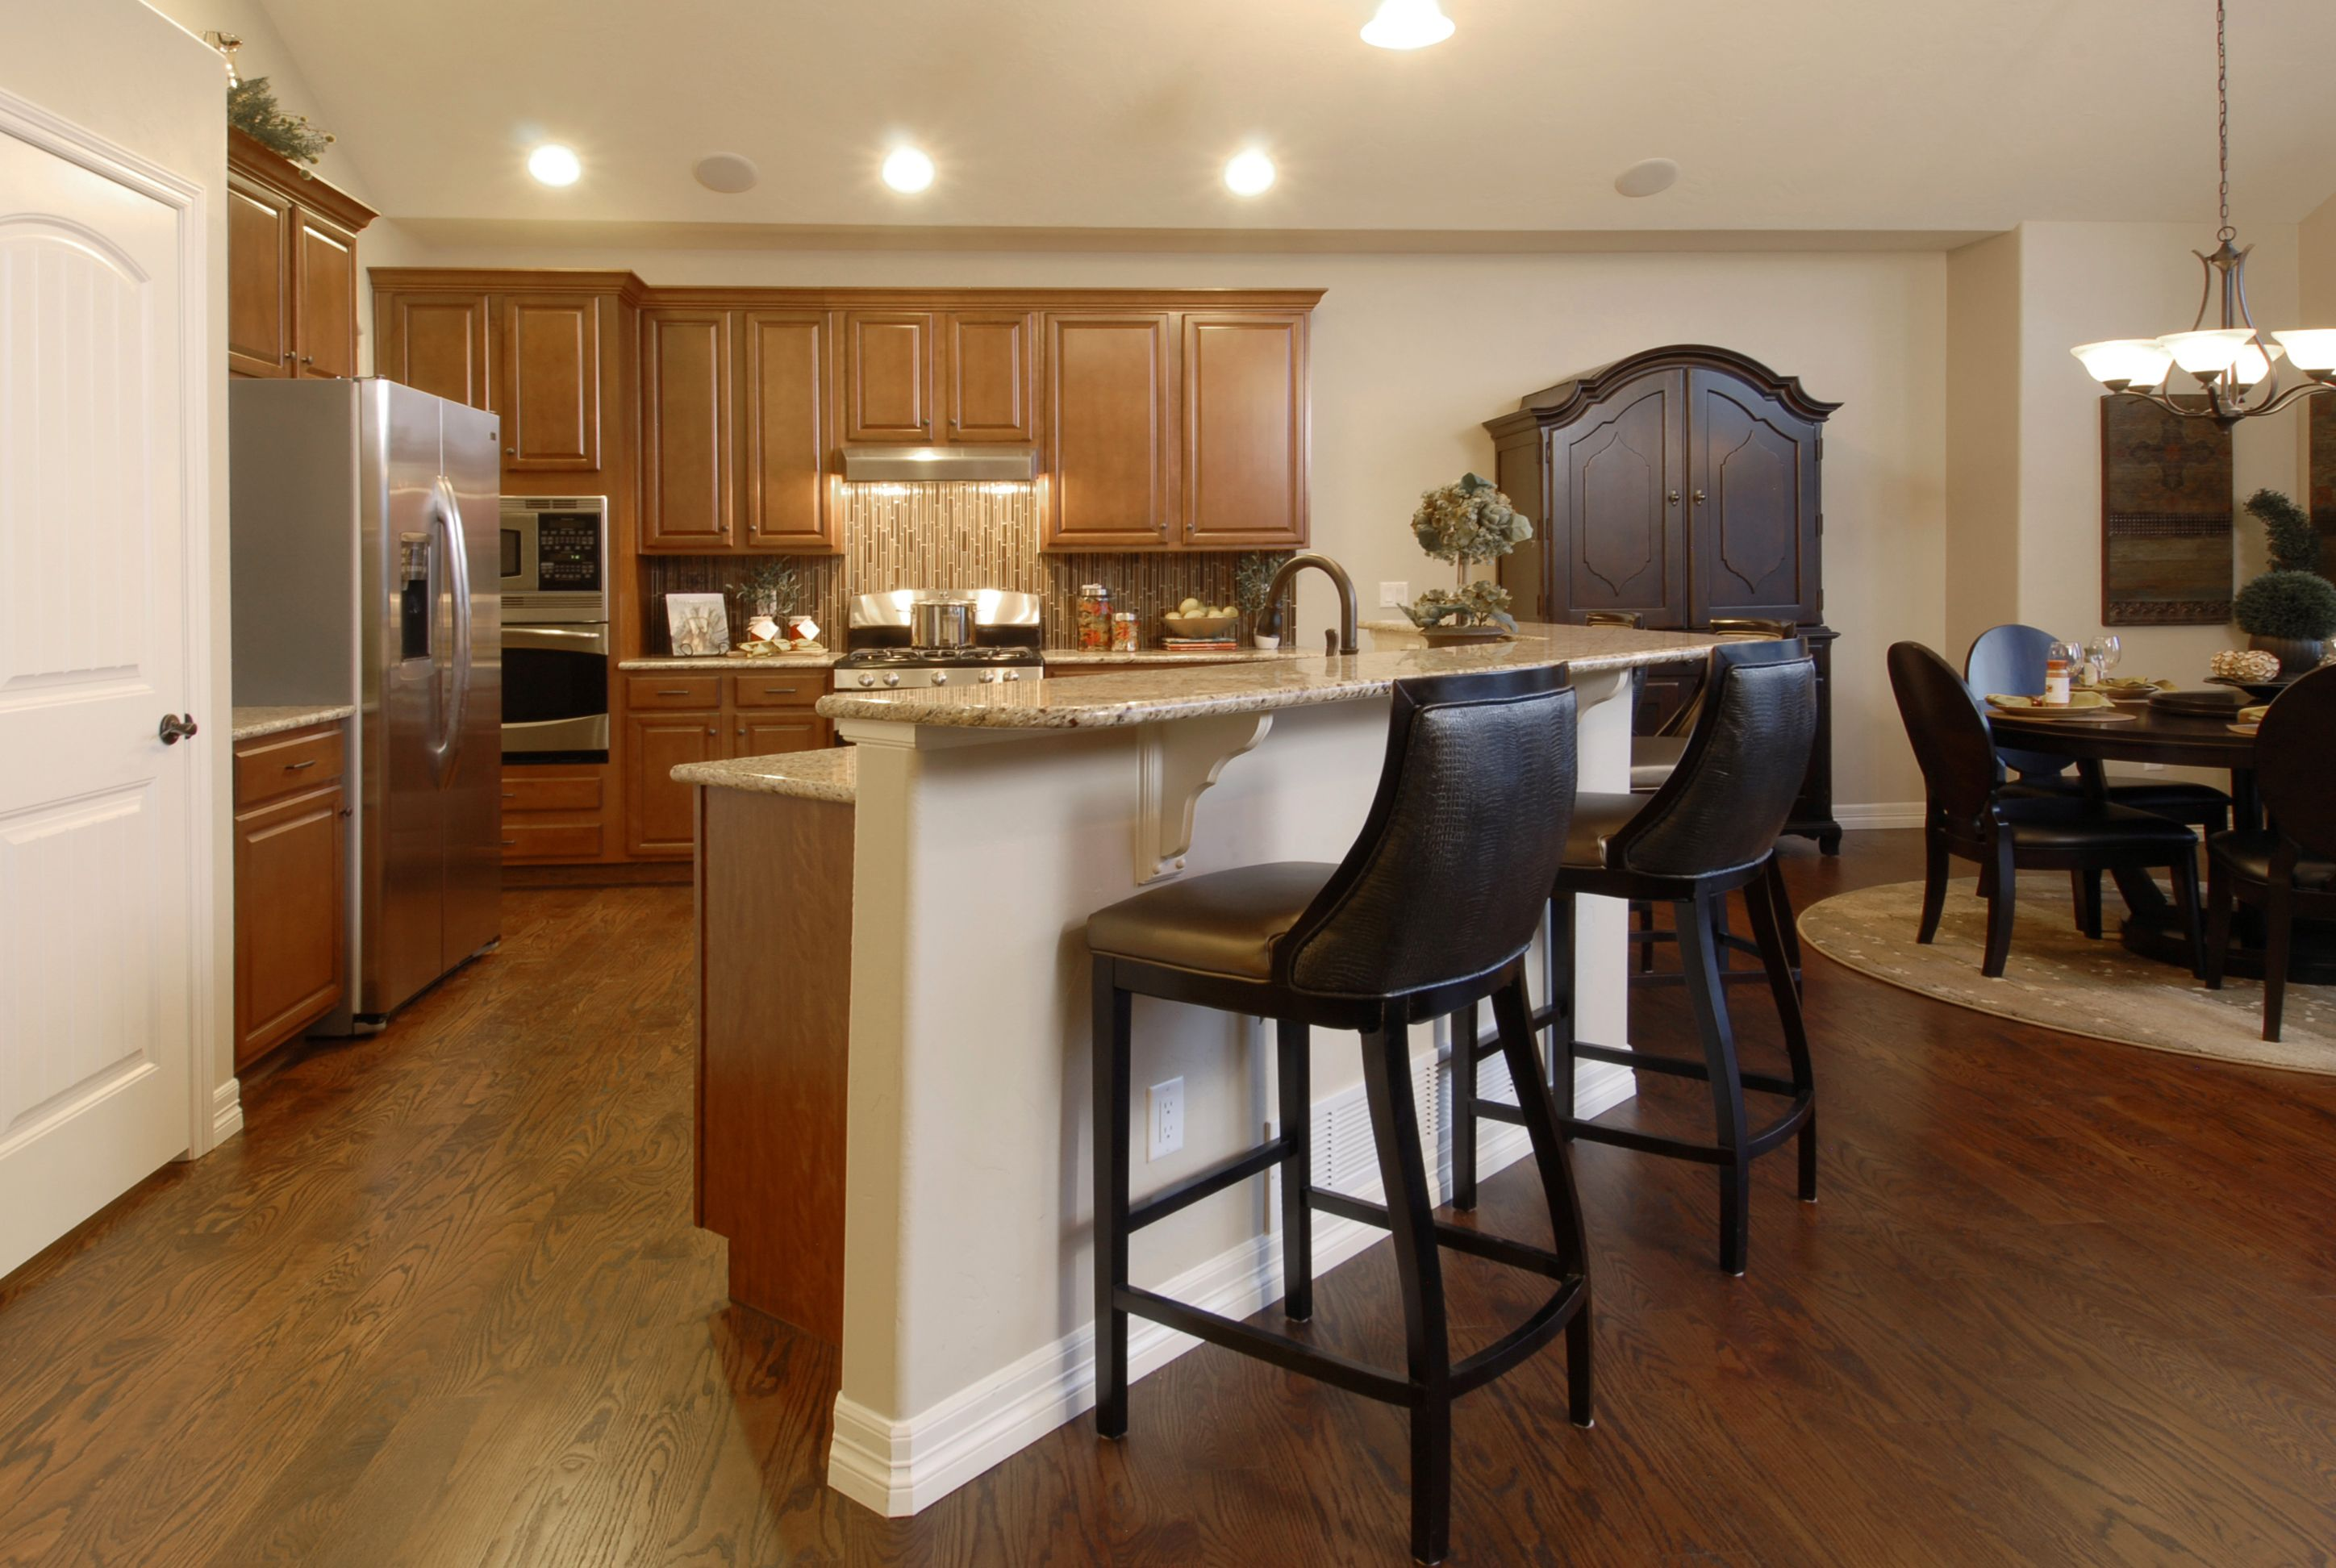 Kitchens of saint aubyn homes are perfect for gatherings